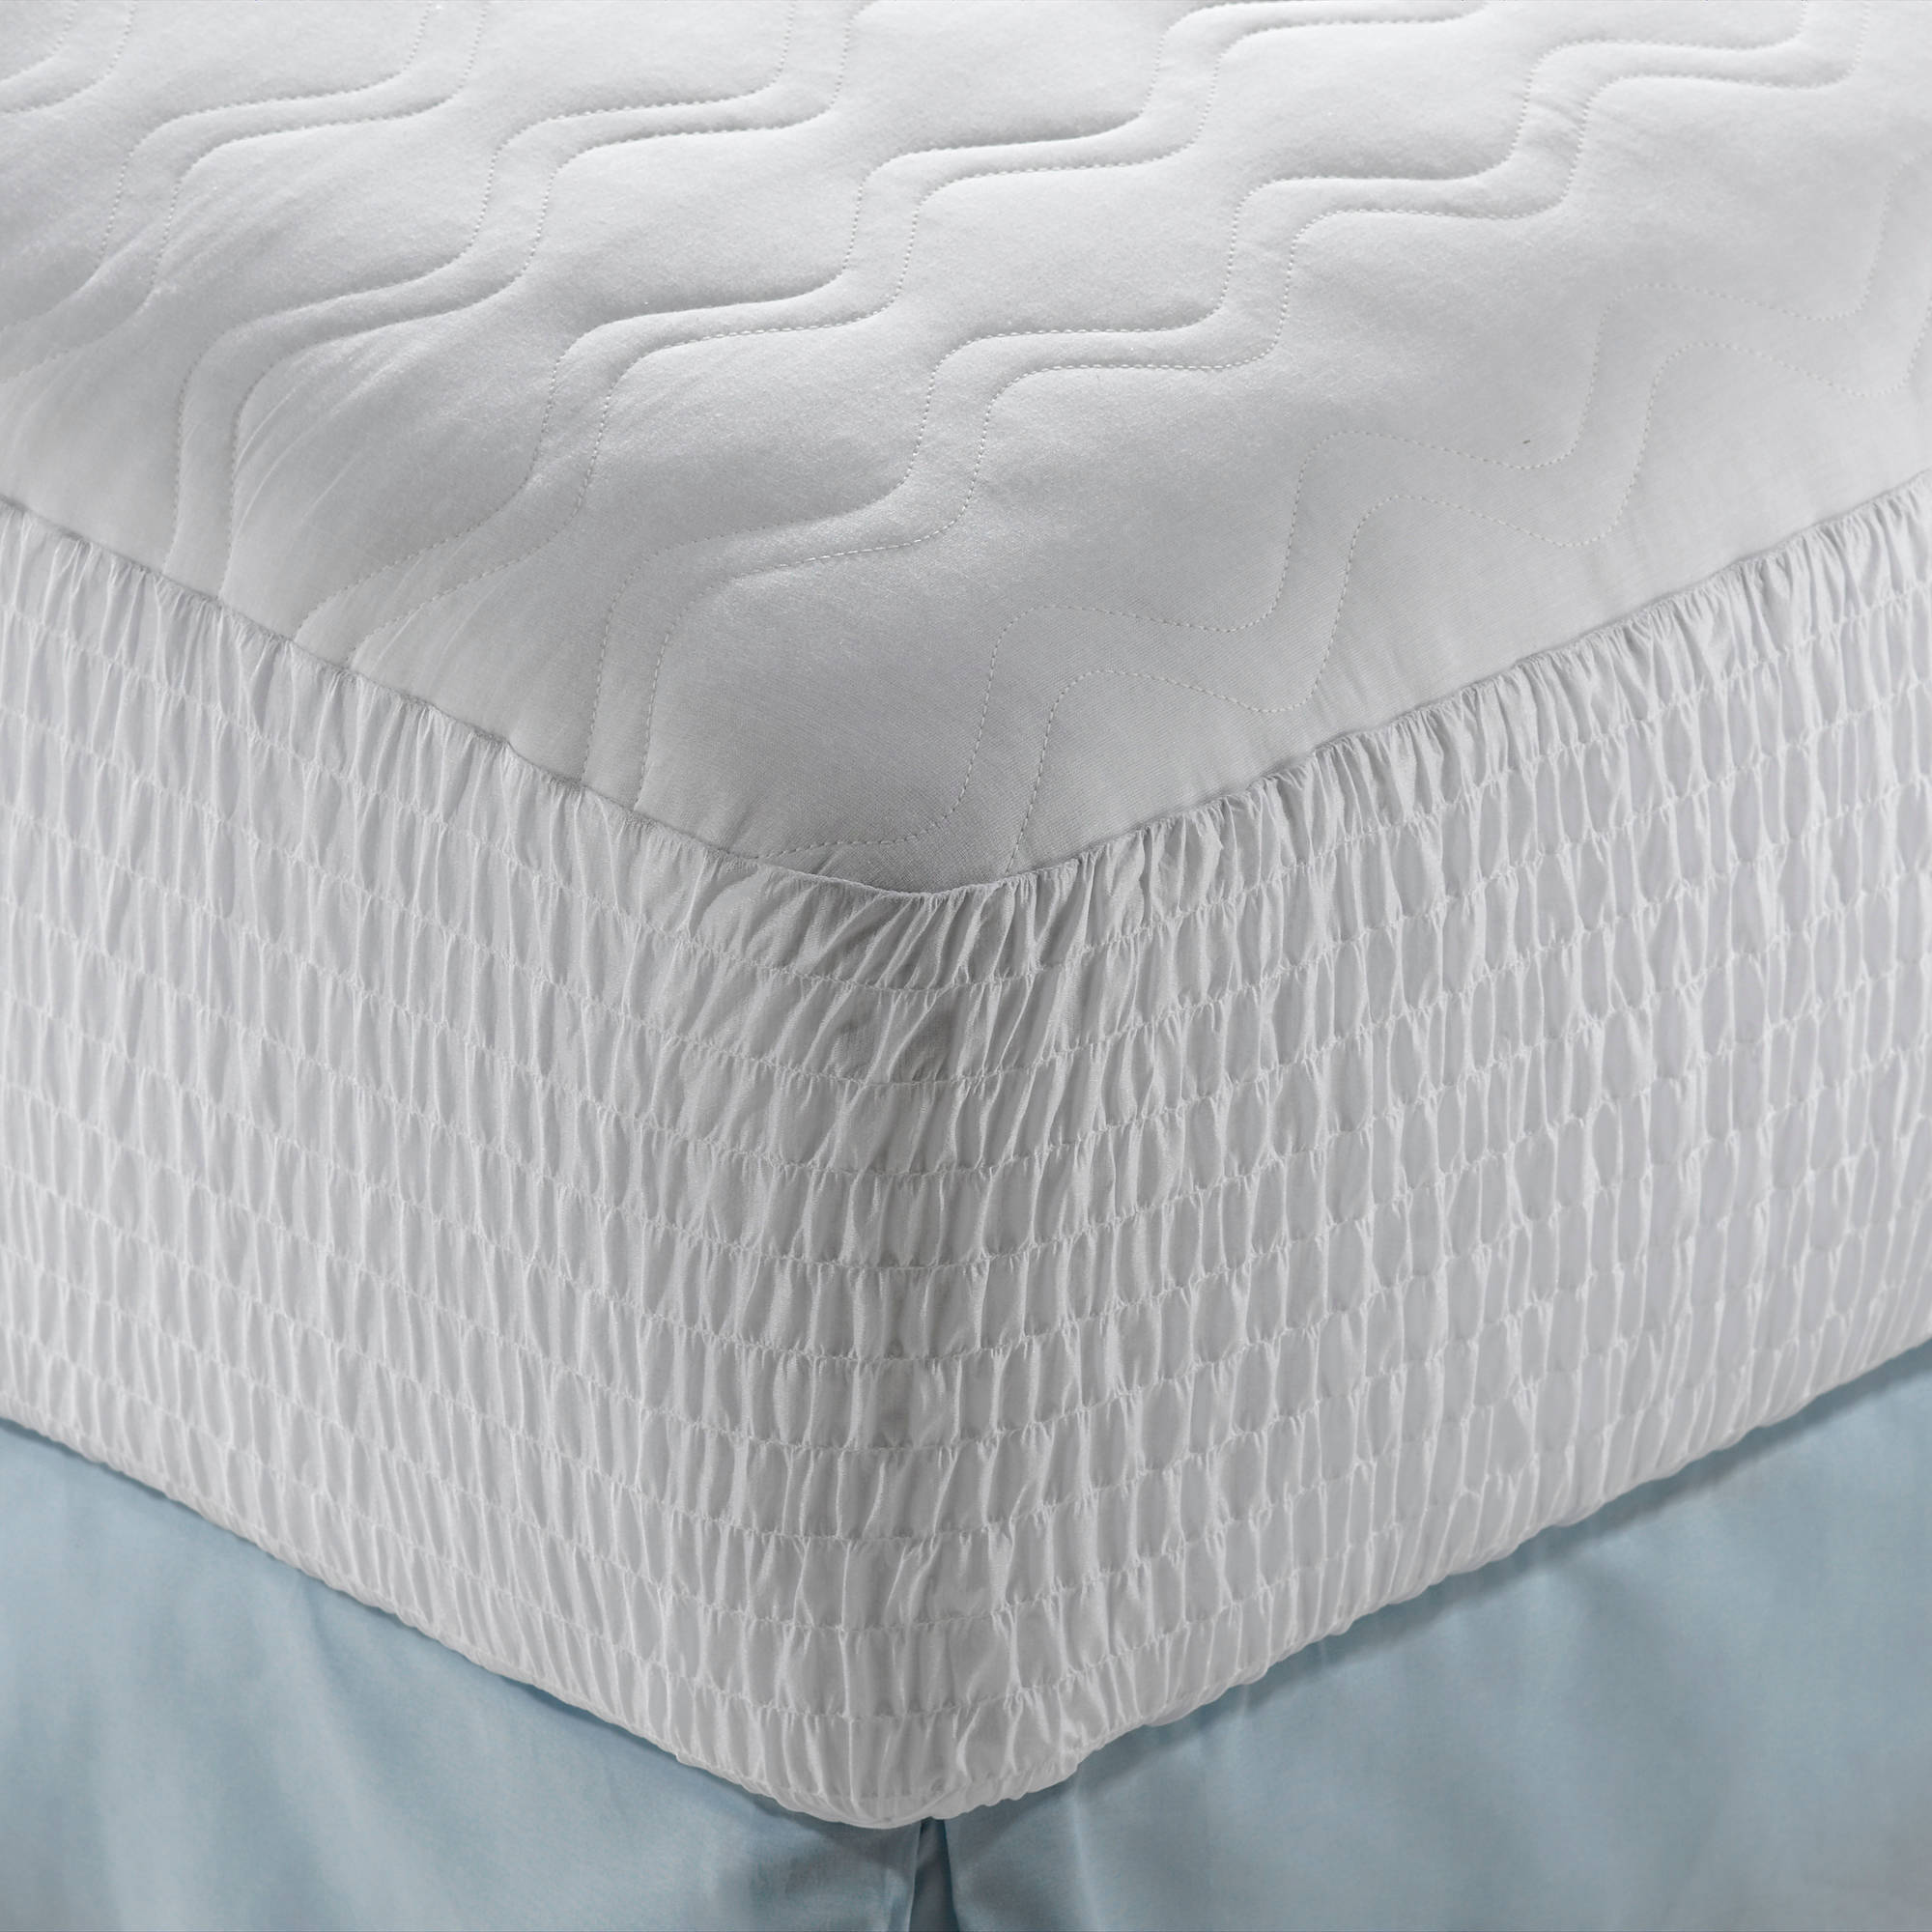 mattress spring mattressonly air topper co pillowtop pcok top springair pillow previous cassidy eurotop